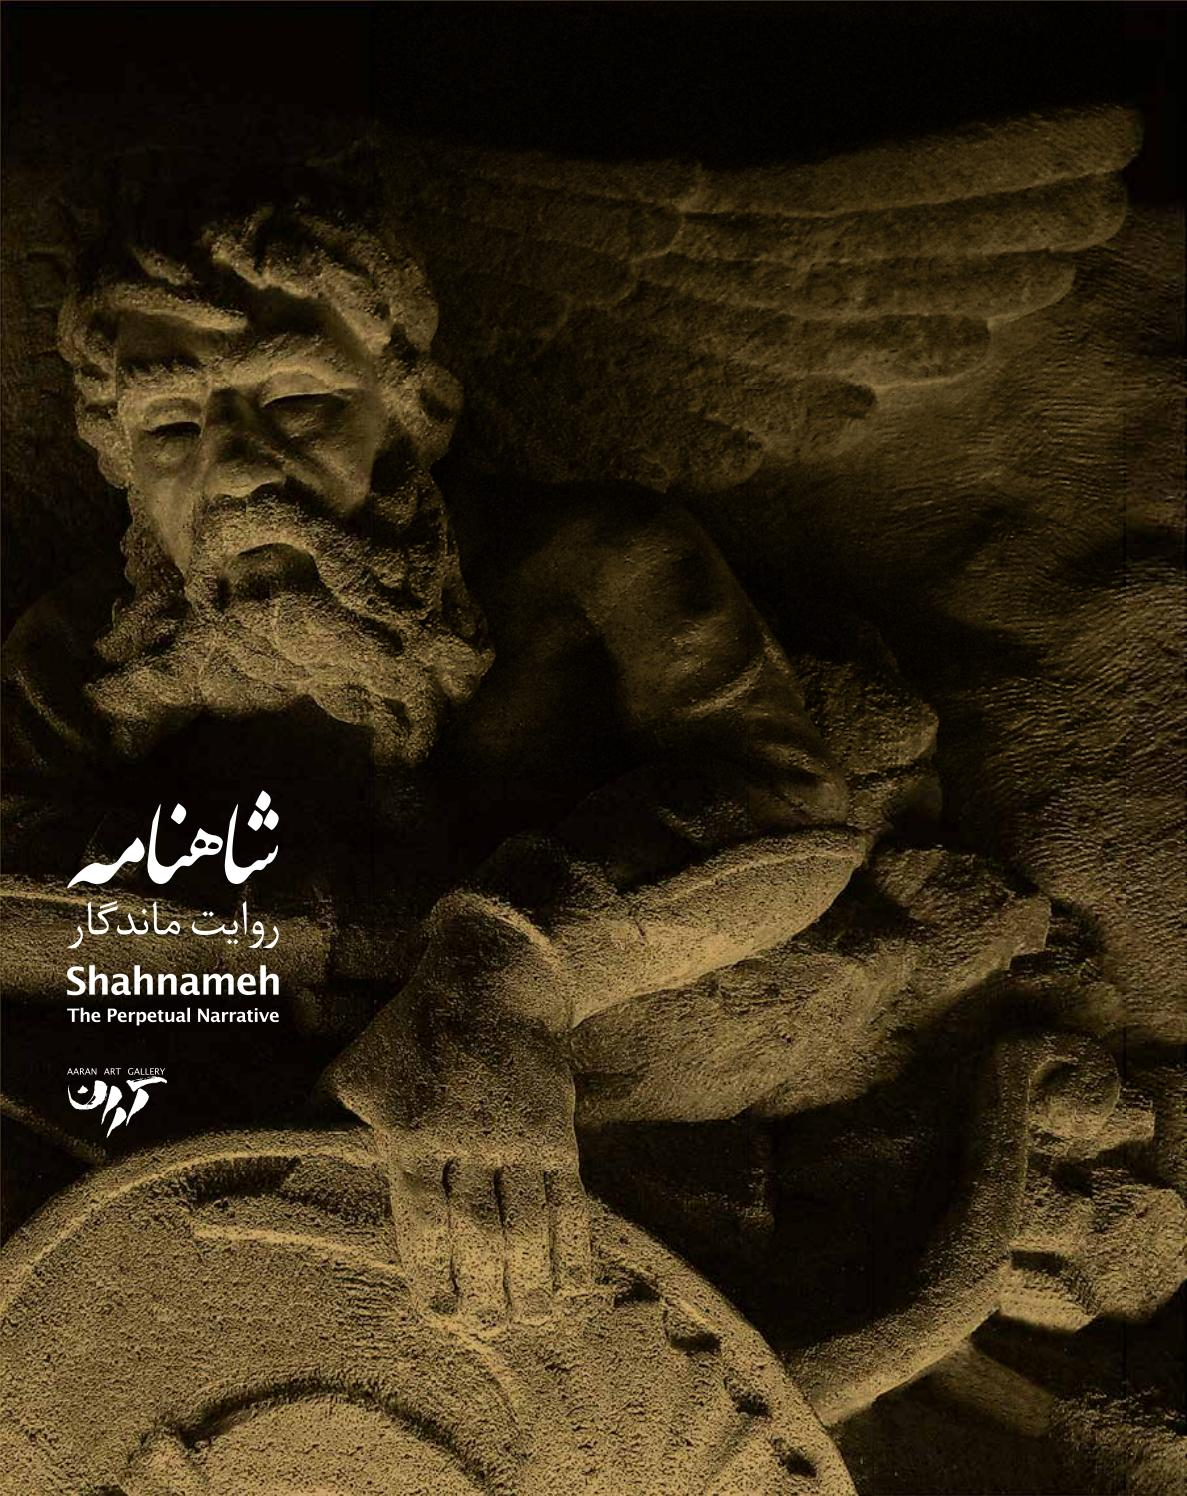 Shahnameh, The Perpetual Narrative by Aaran Gallery - issuu